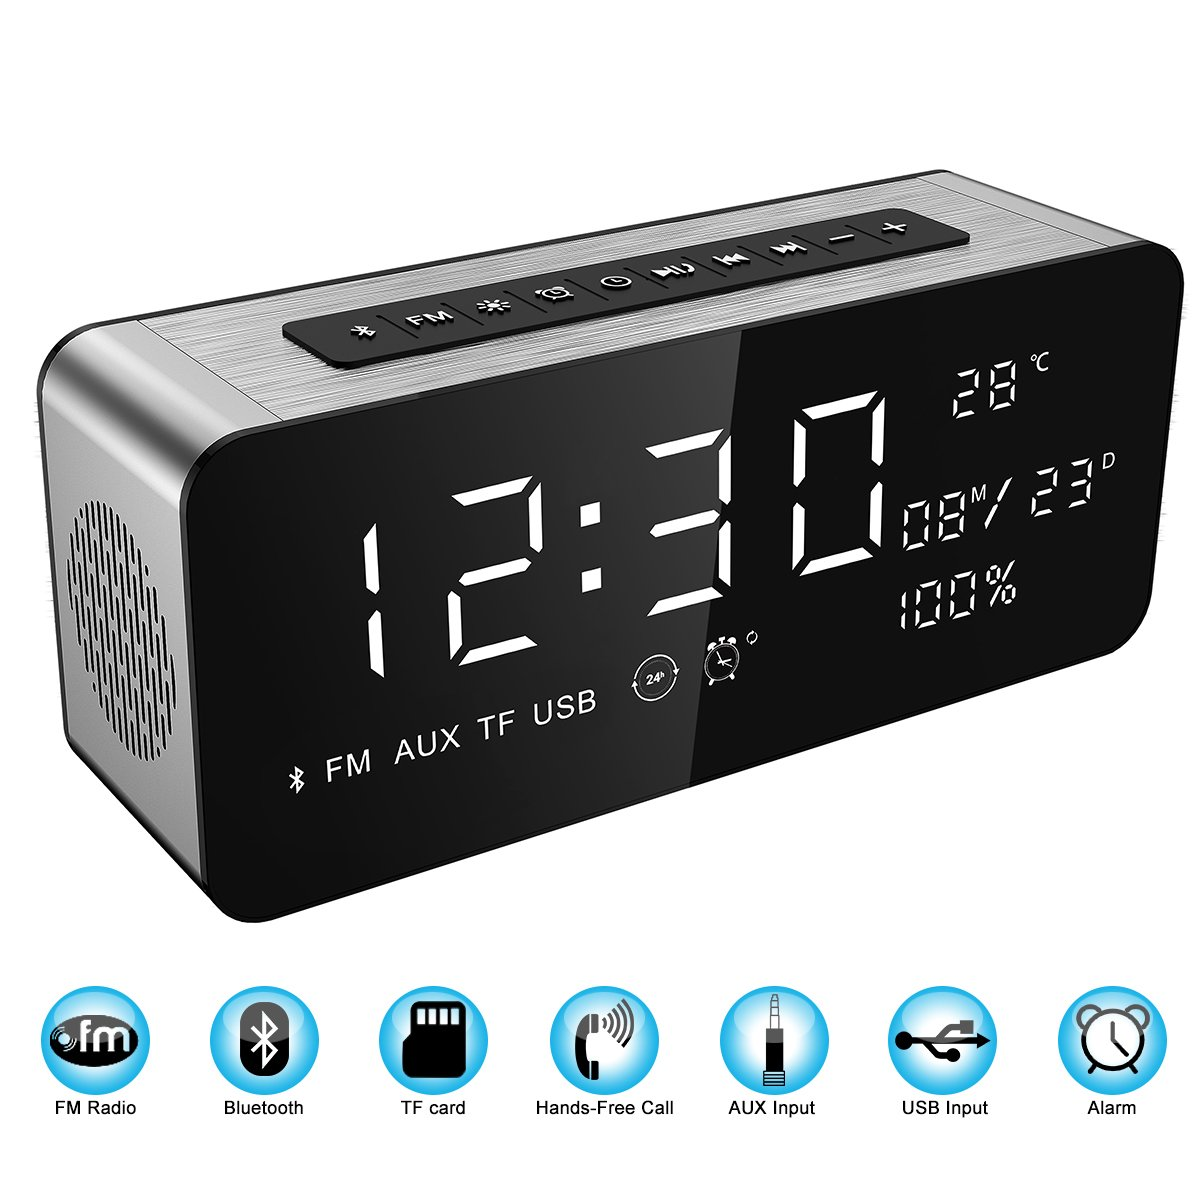 Orionstar Alarm Clock Radio with FM Wireless Speaker for Bedroom with 8 Inch LED Screen Snooze Sleep Timer Dimmer USB Port Thermometer Display TF AUX Micro SD Widely Compatible Model S1